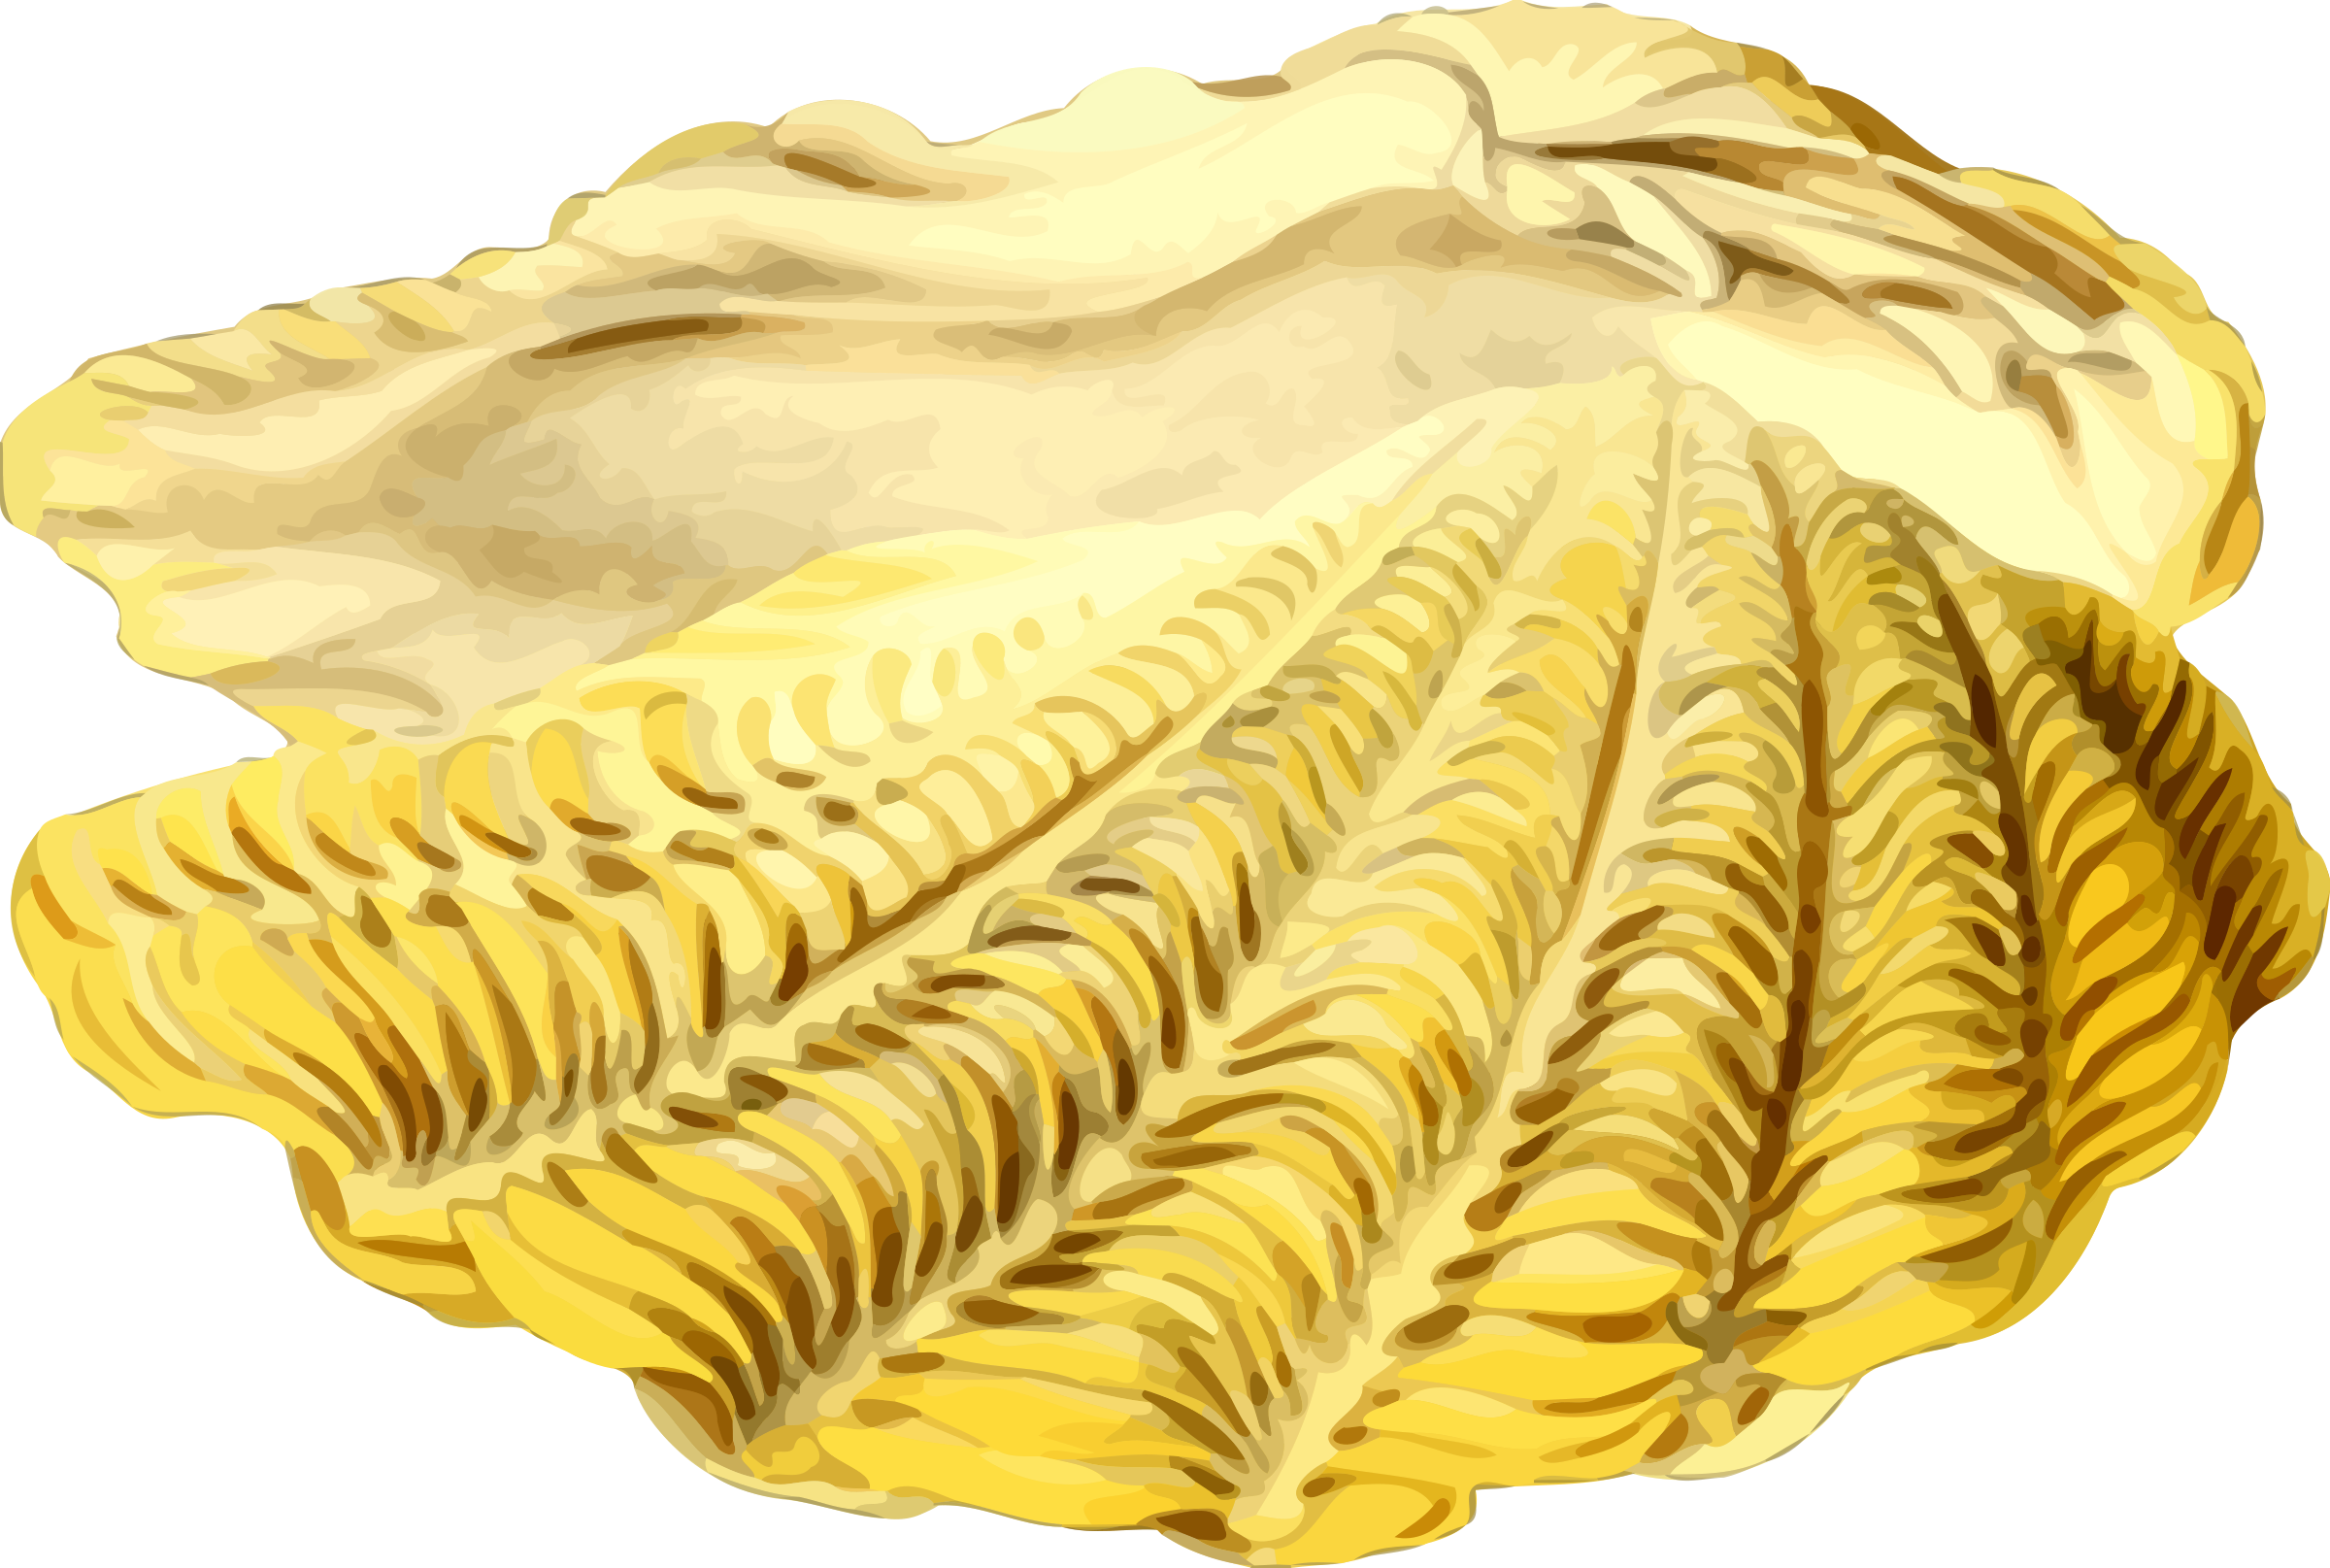 Big image png. Shell clipart sea side